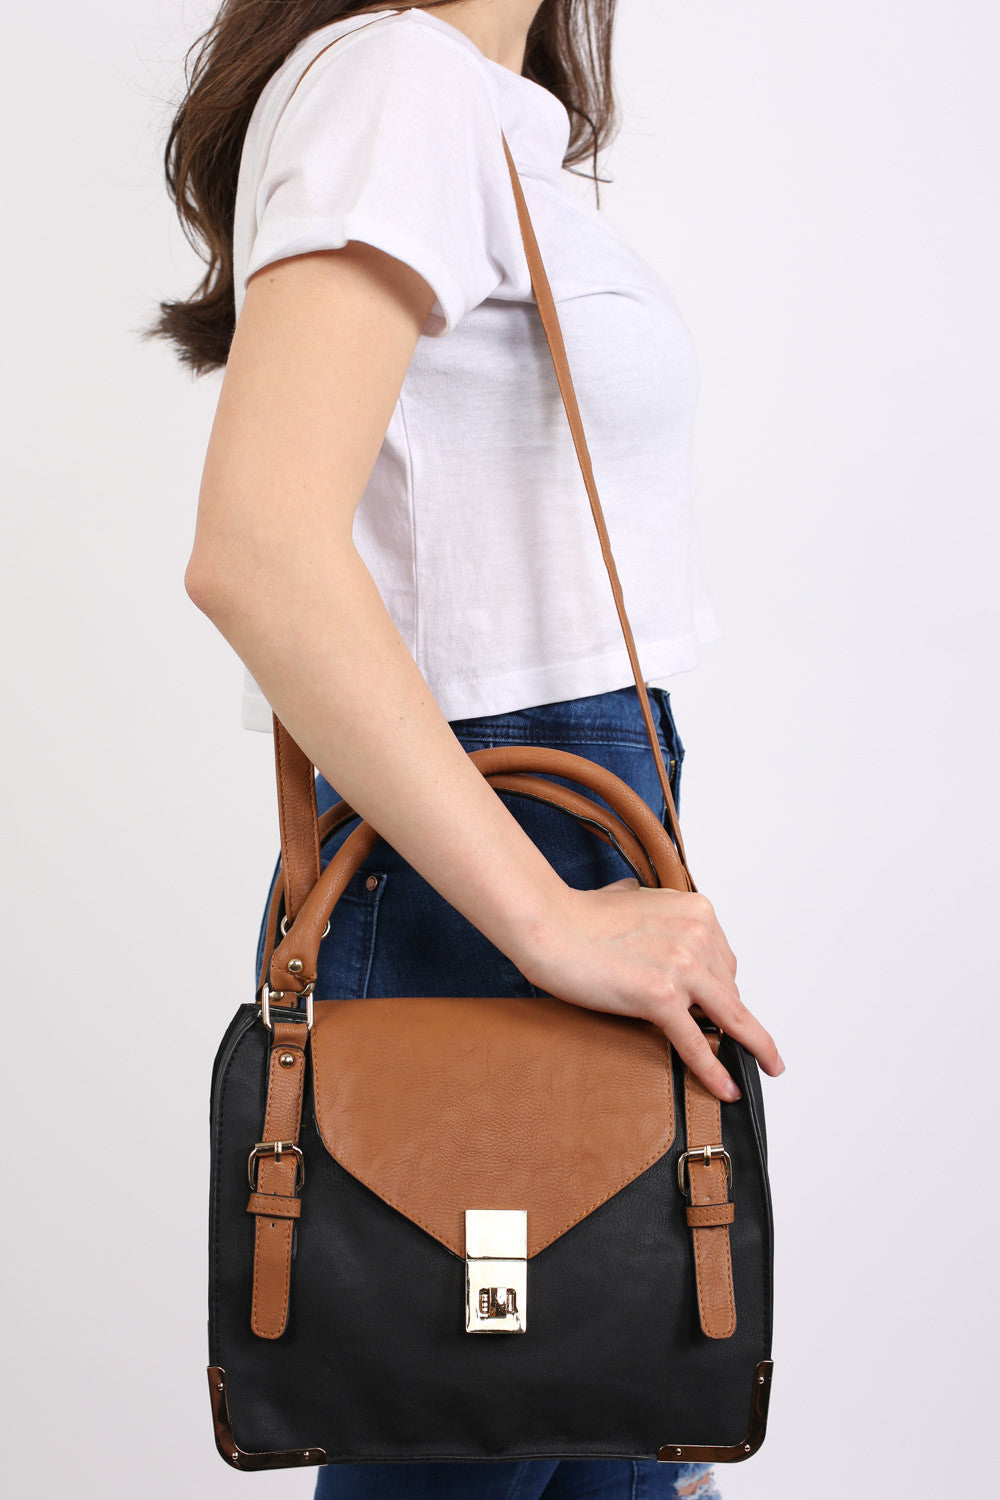 Colour Block Tote Bag in Black 1